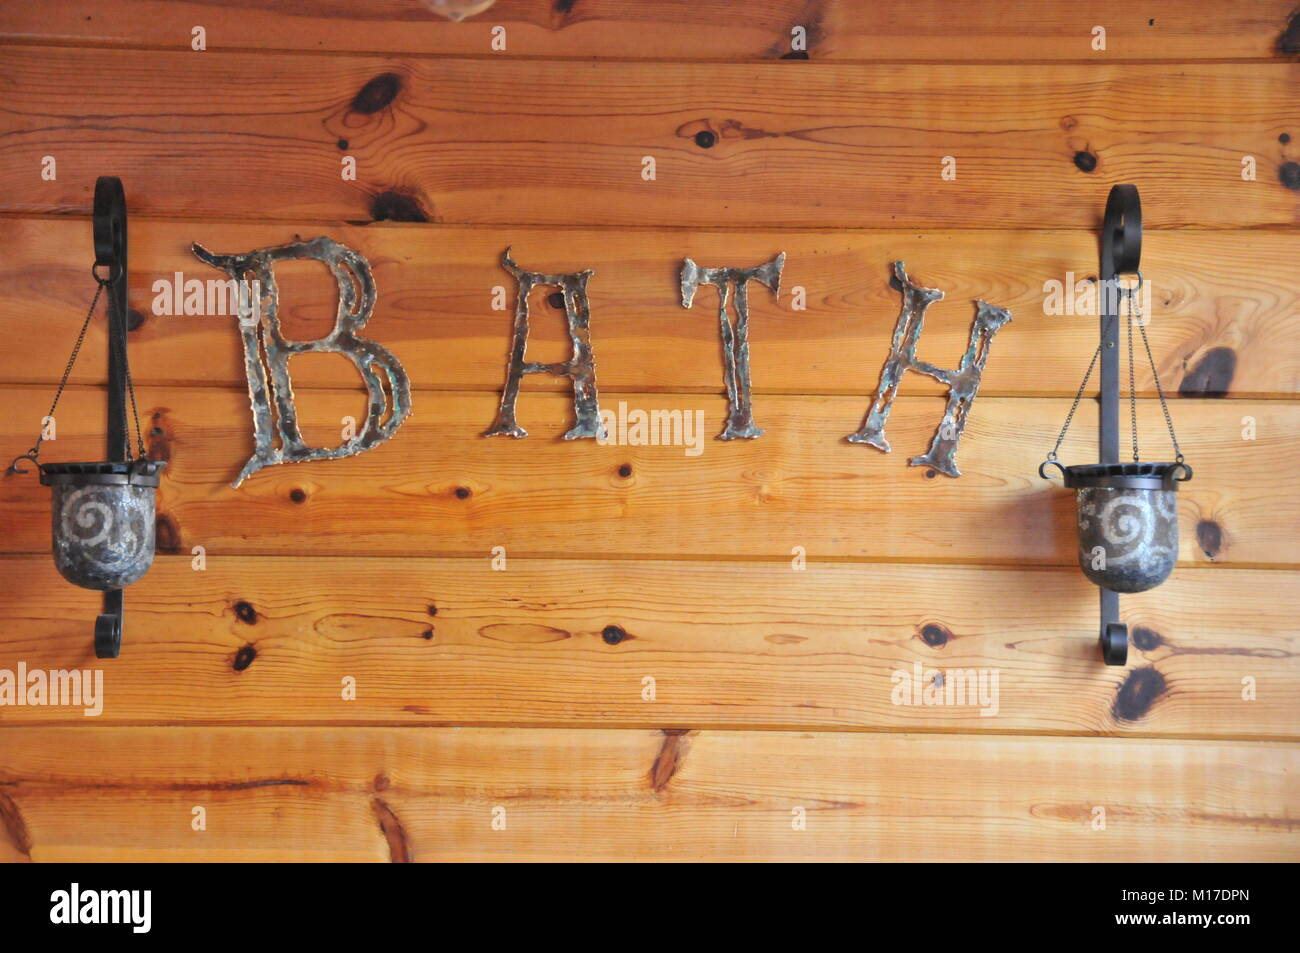 Distressed metal letters spelling out the word 'BATH' mounted on a knotty pine background. - Stock Image